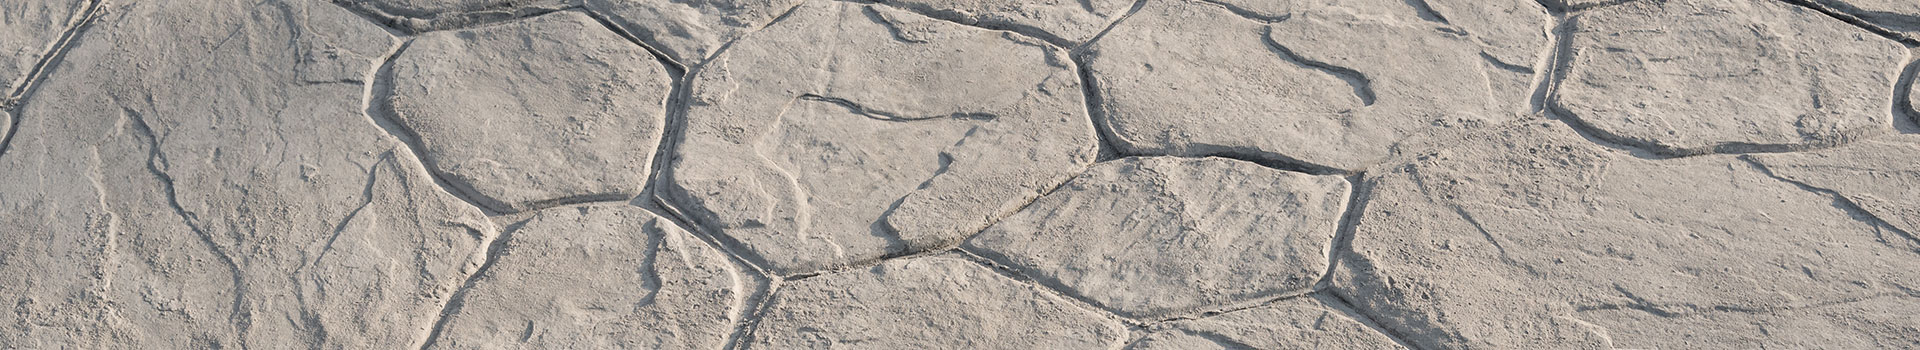 StormShield Products - Close-Up image of stamped concrete pavement